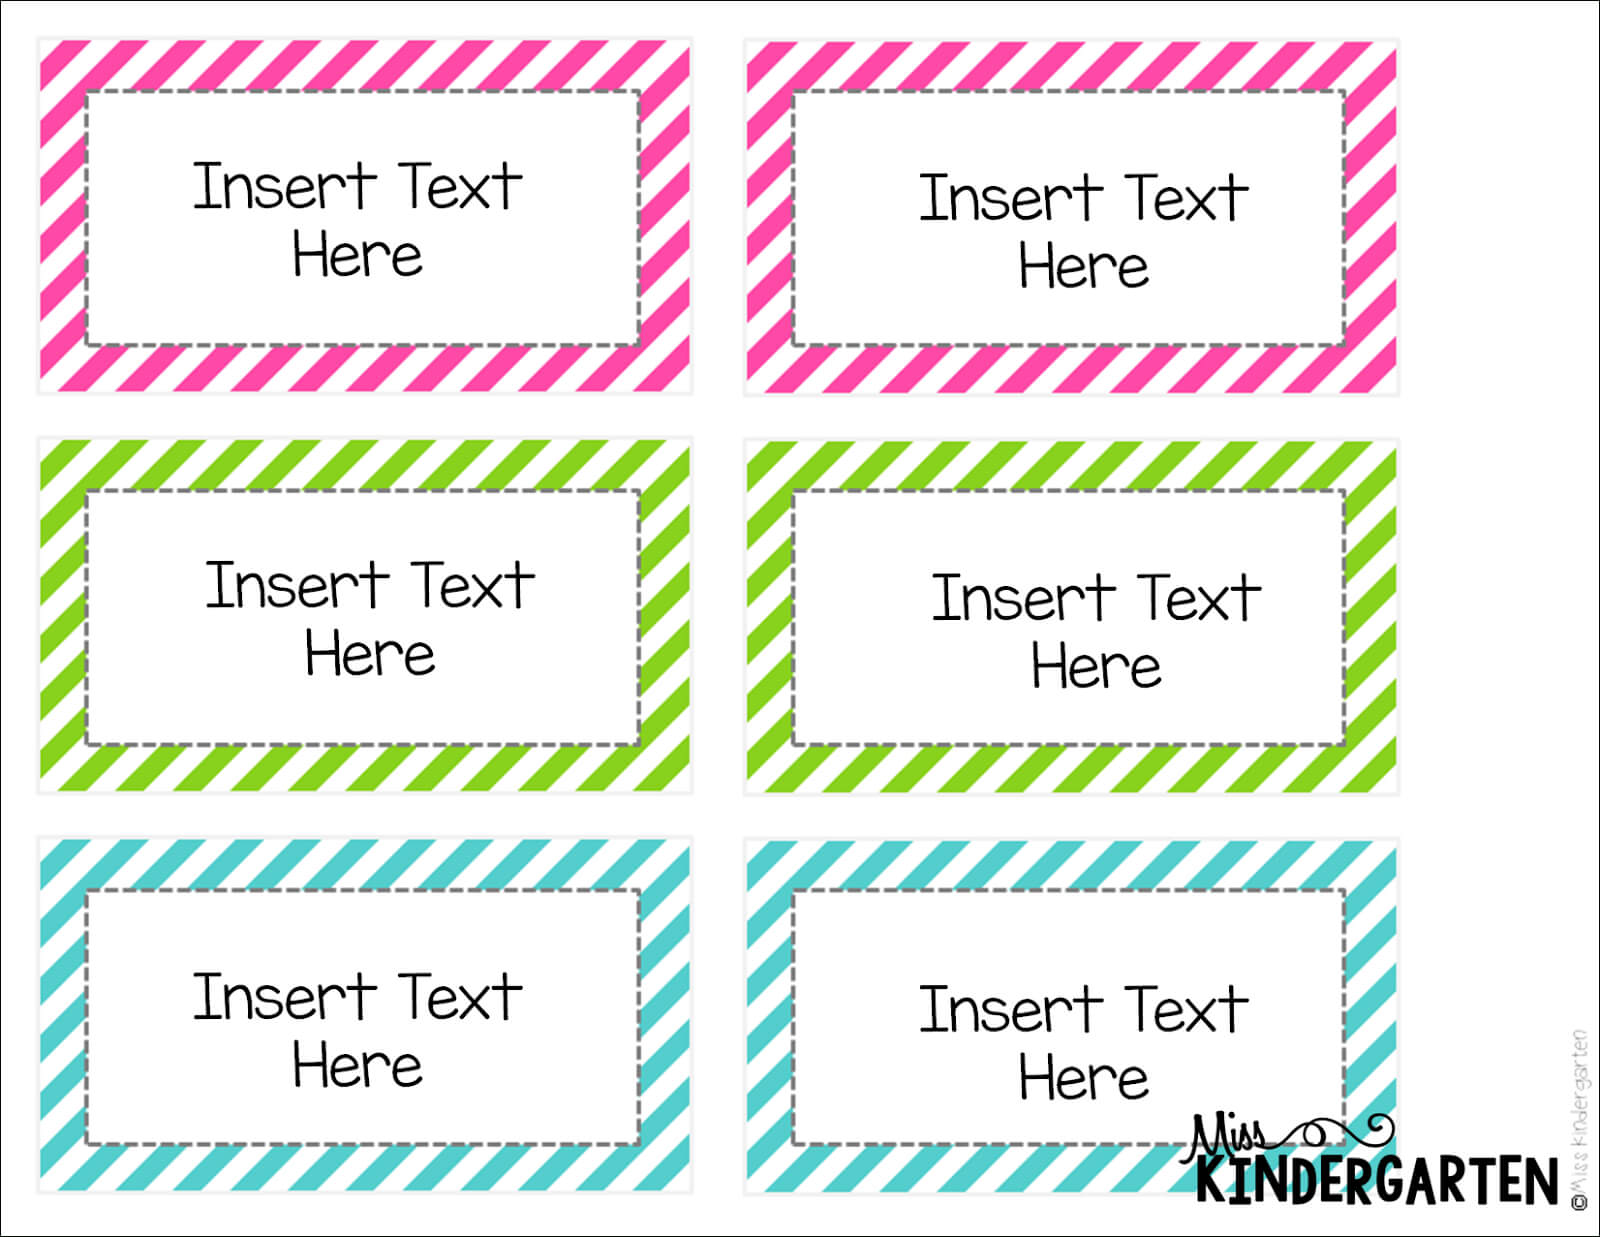 Editable Word Wall Templates! - Miss Kindergarten With Blank Word Wall Template Free